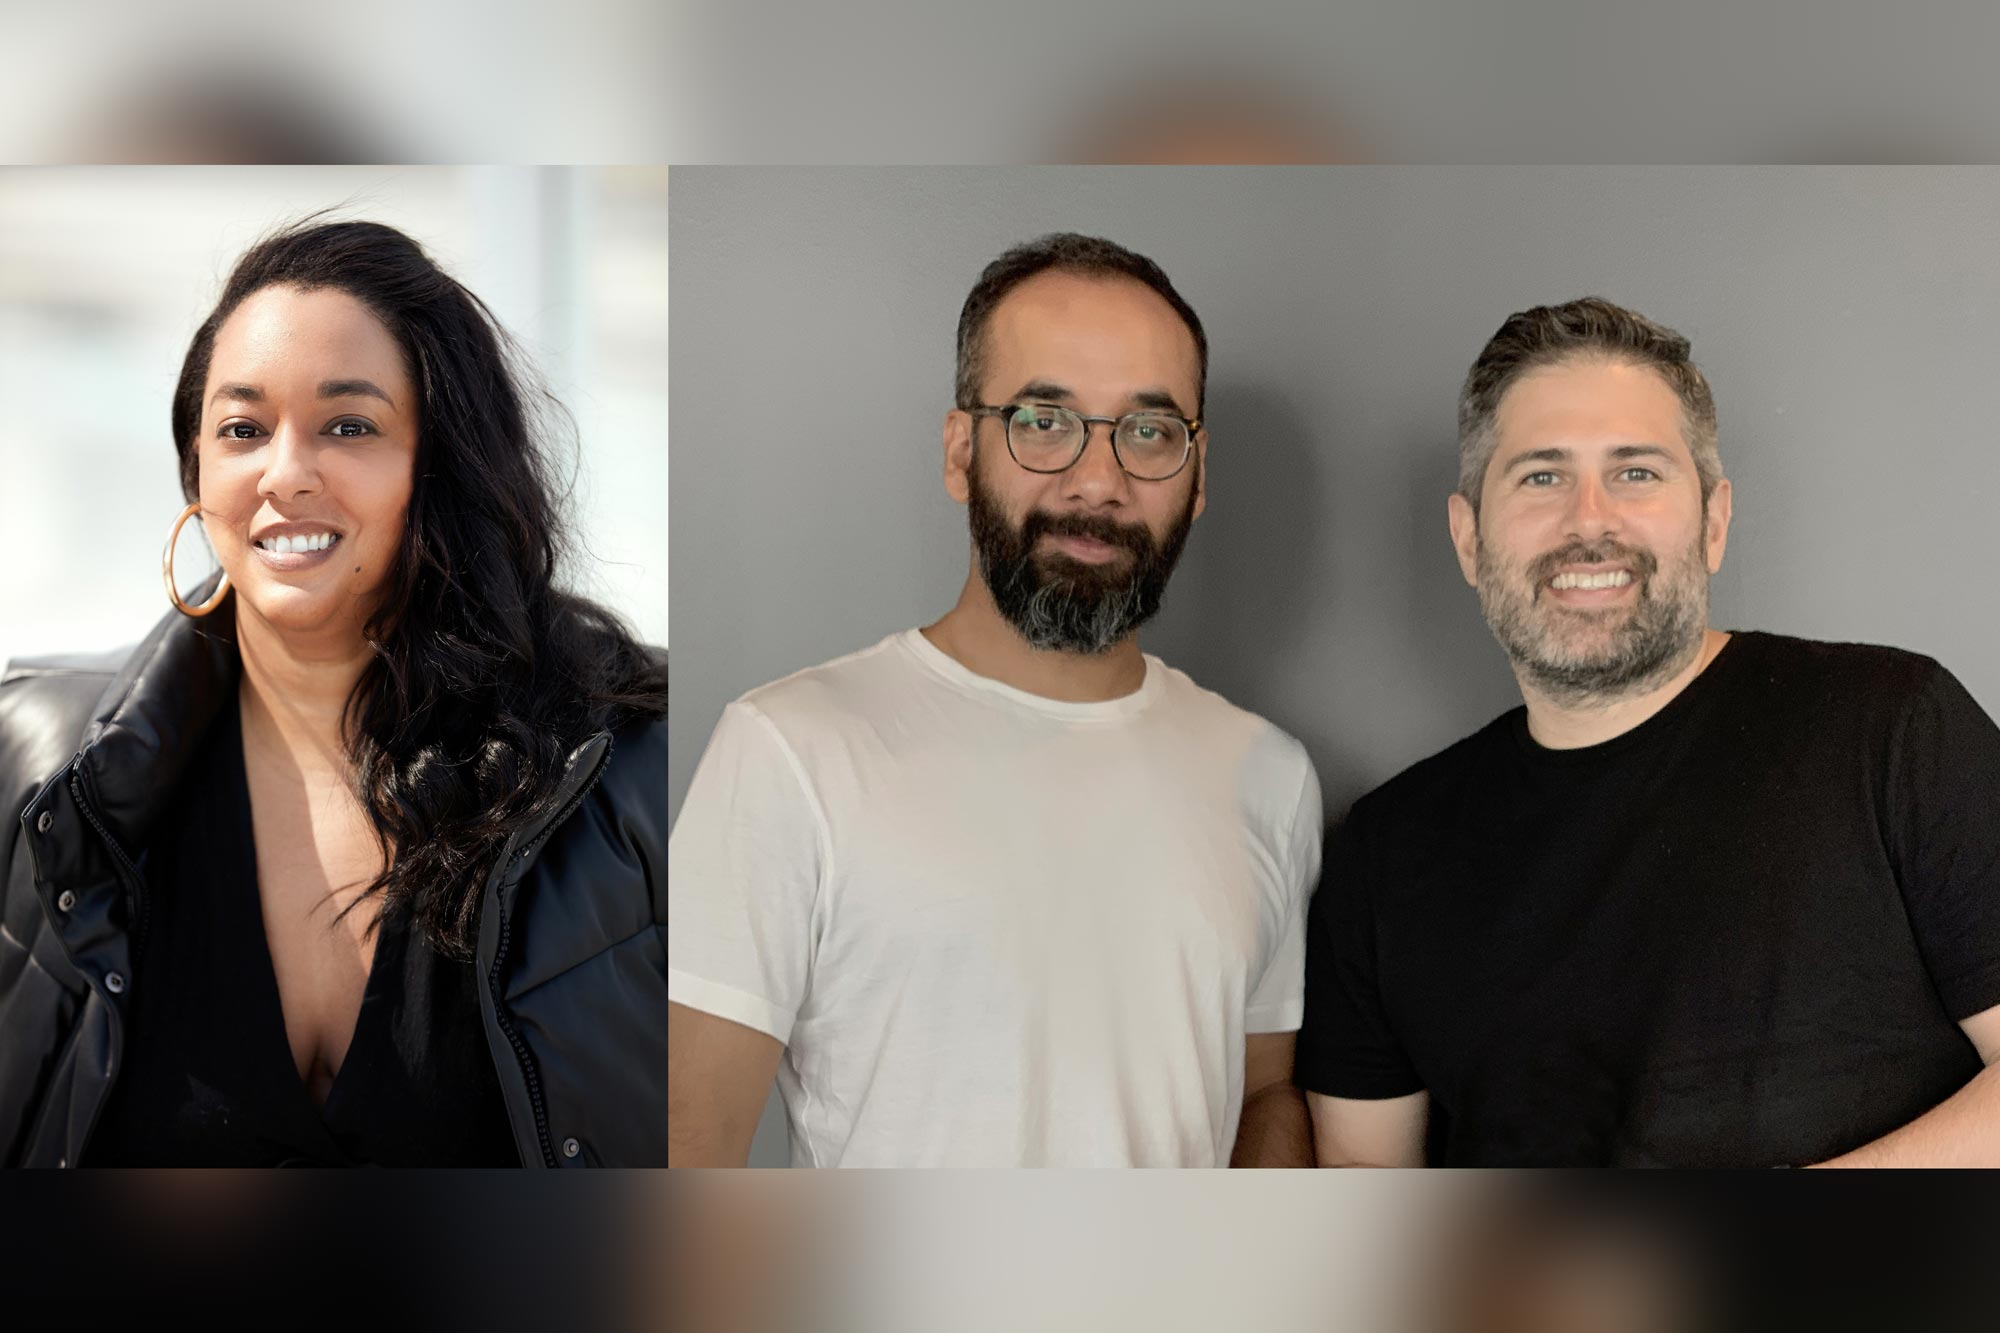 Havas New York hires creative trio in bid to boost diversity and culture